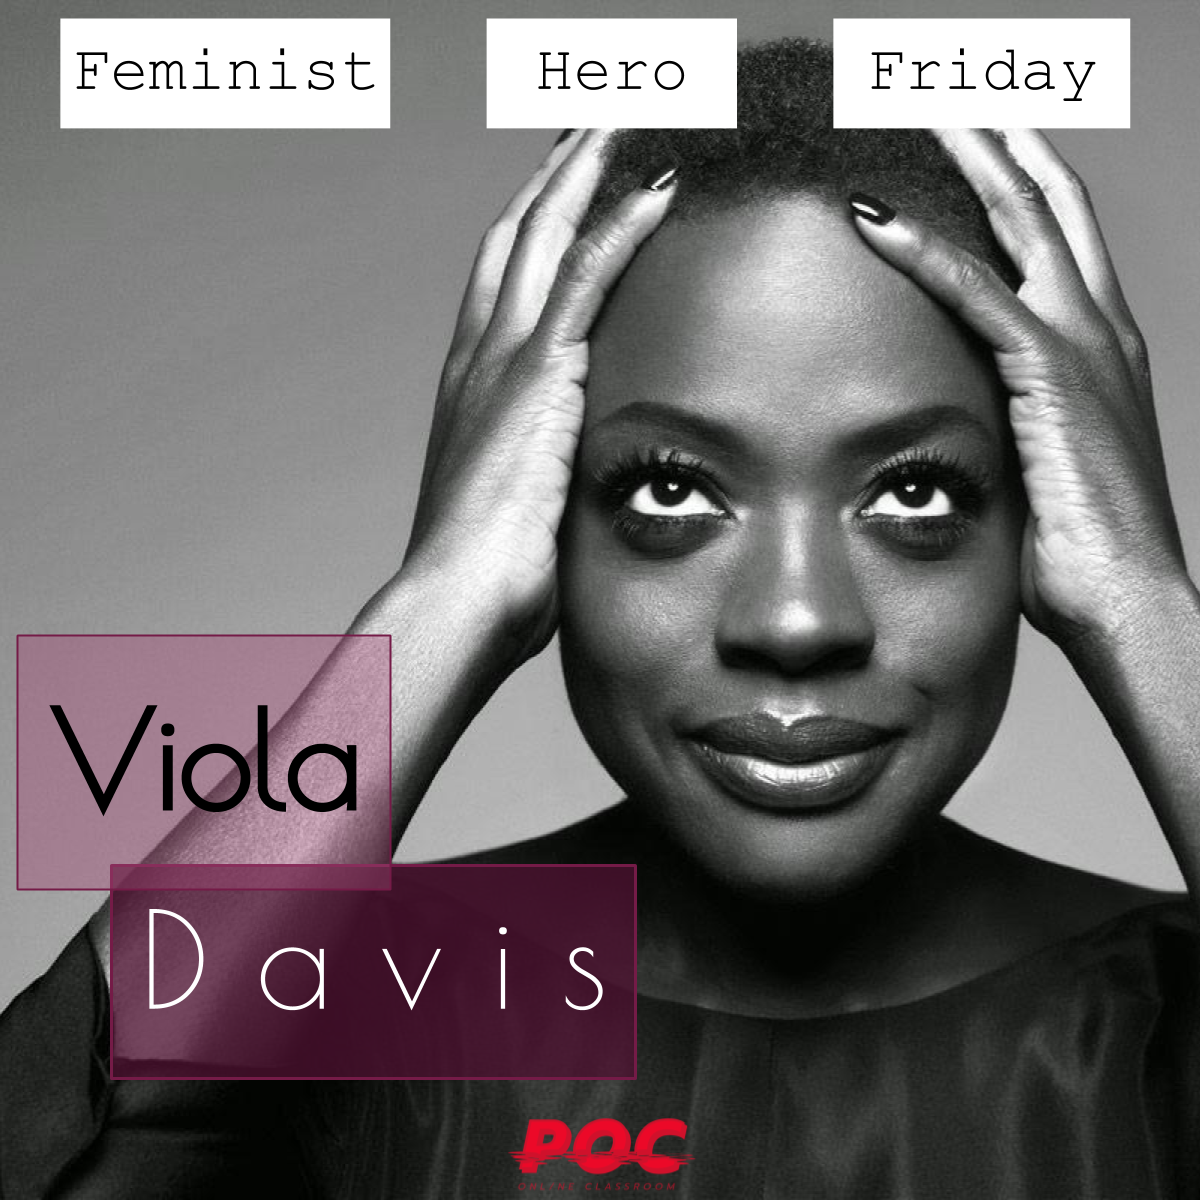 """Black and white image of Viola Davis smiling and holding her head with both of her hands. She has short, natural hair. At the top of the image reads """"Feminist Hero Friday"""" in three white text boxes. To the left of Davis' face reads """"Viola Davis"""" in purple text boxes. The red POC logo is at the bottom of the image. Original image via  Celebrate Women ."""